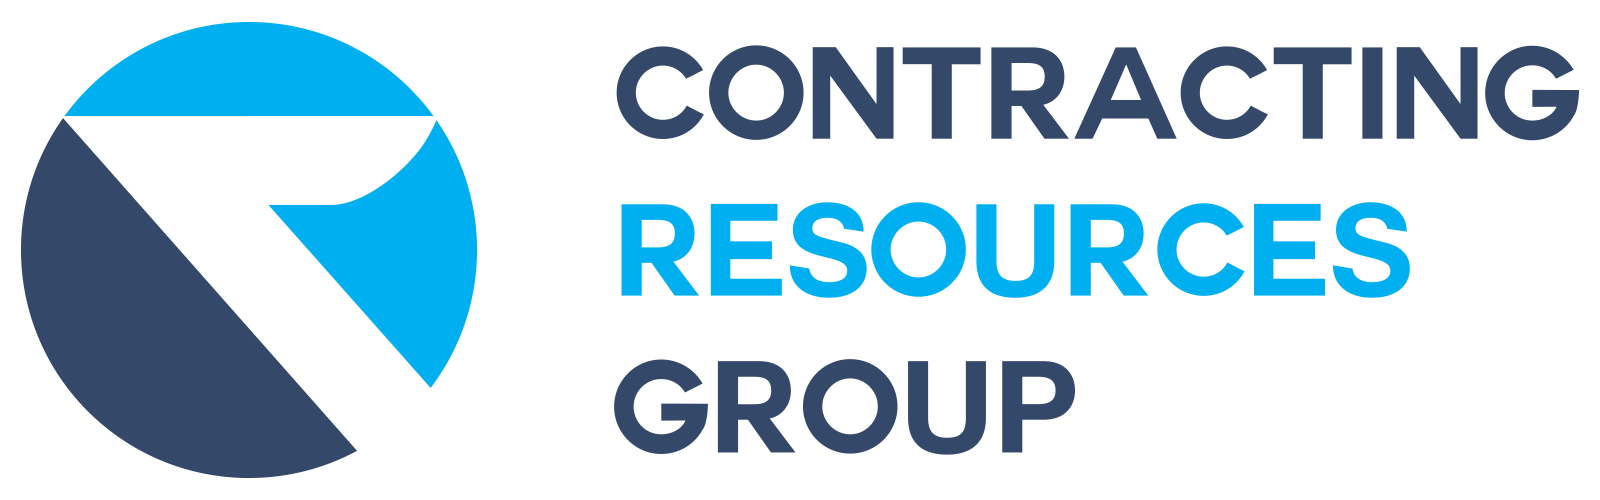 Contracting Resources Group, Inc. Logo